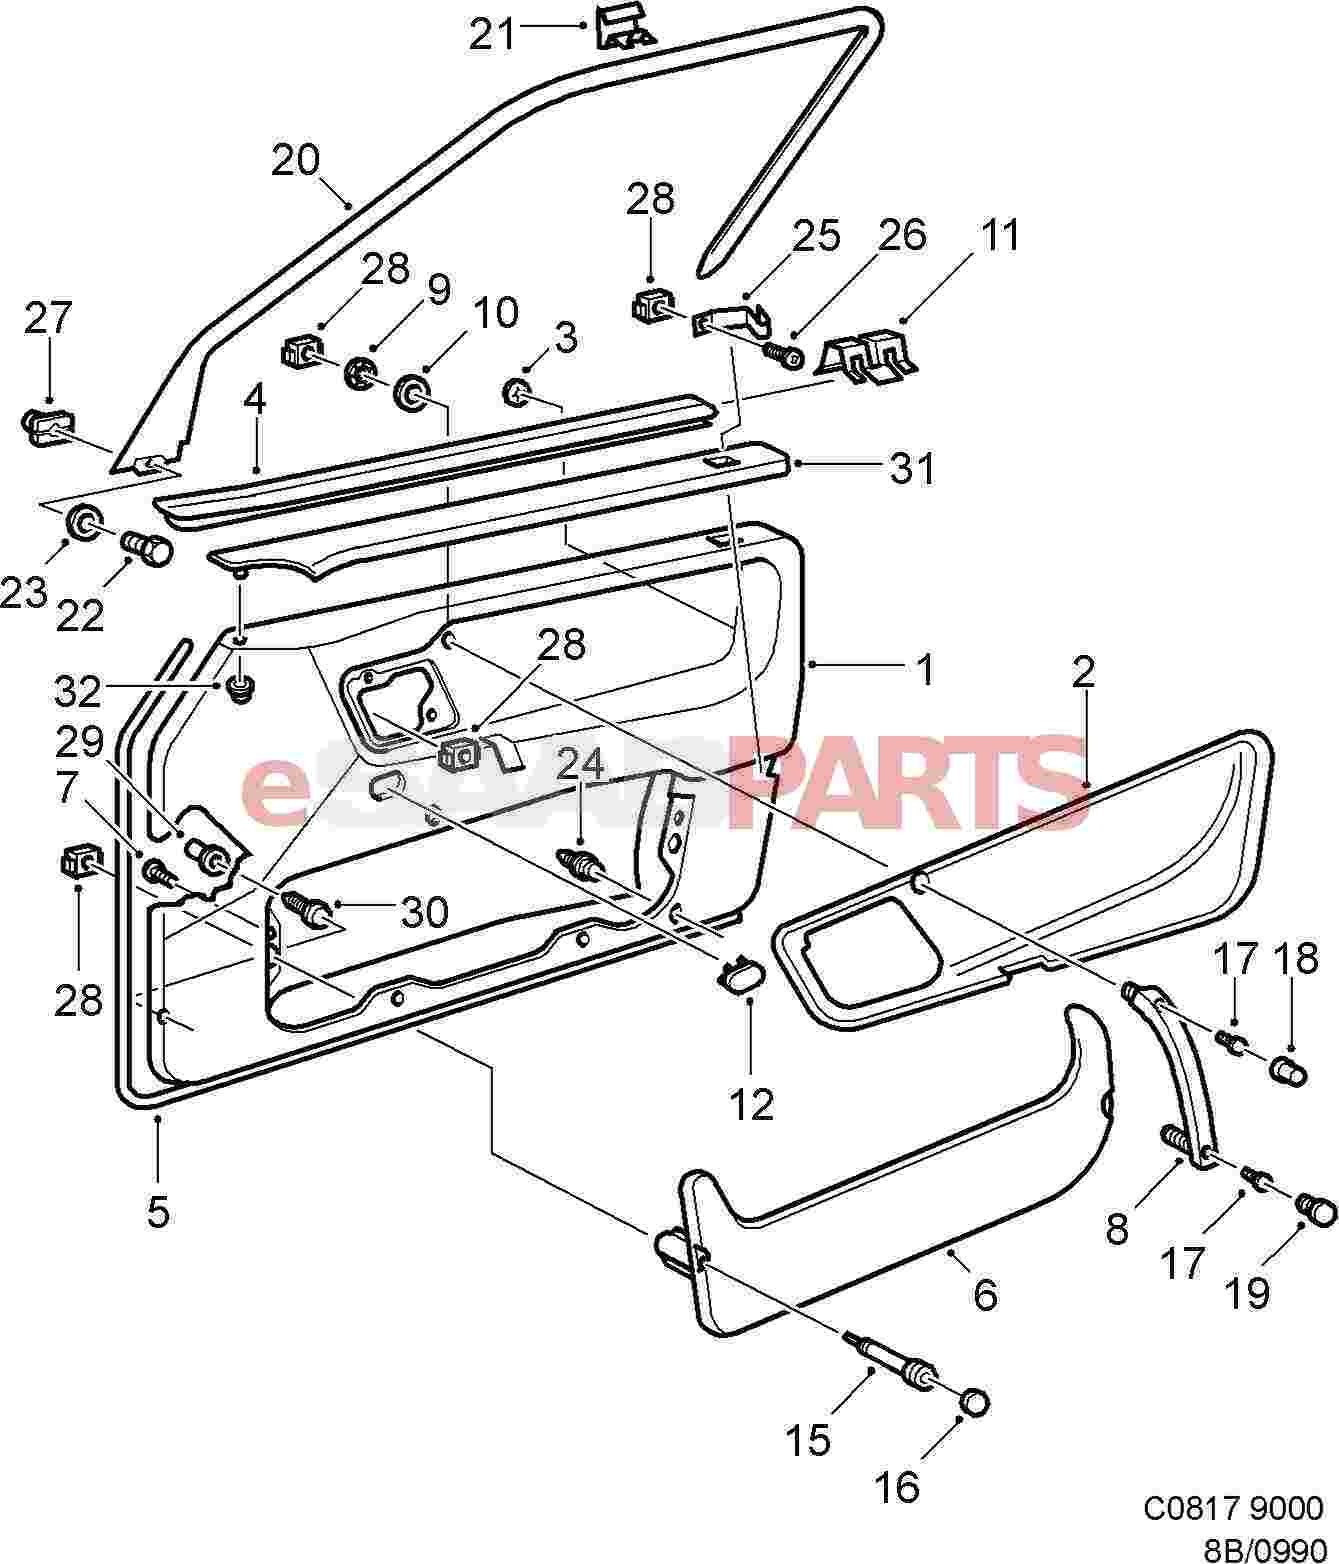 4818910 saab door panel genuine saab parts from esaabparts